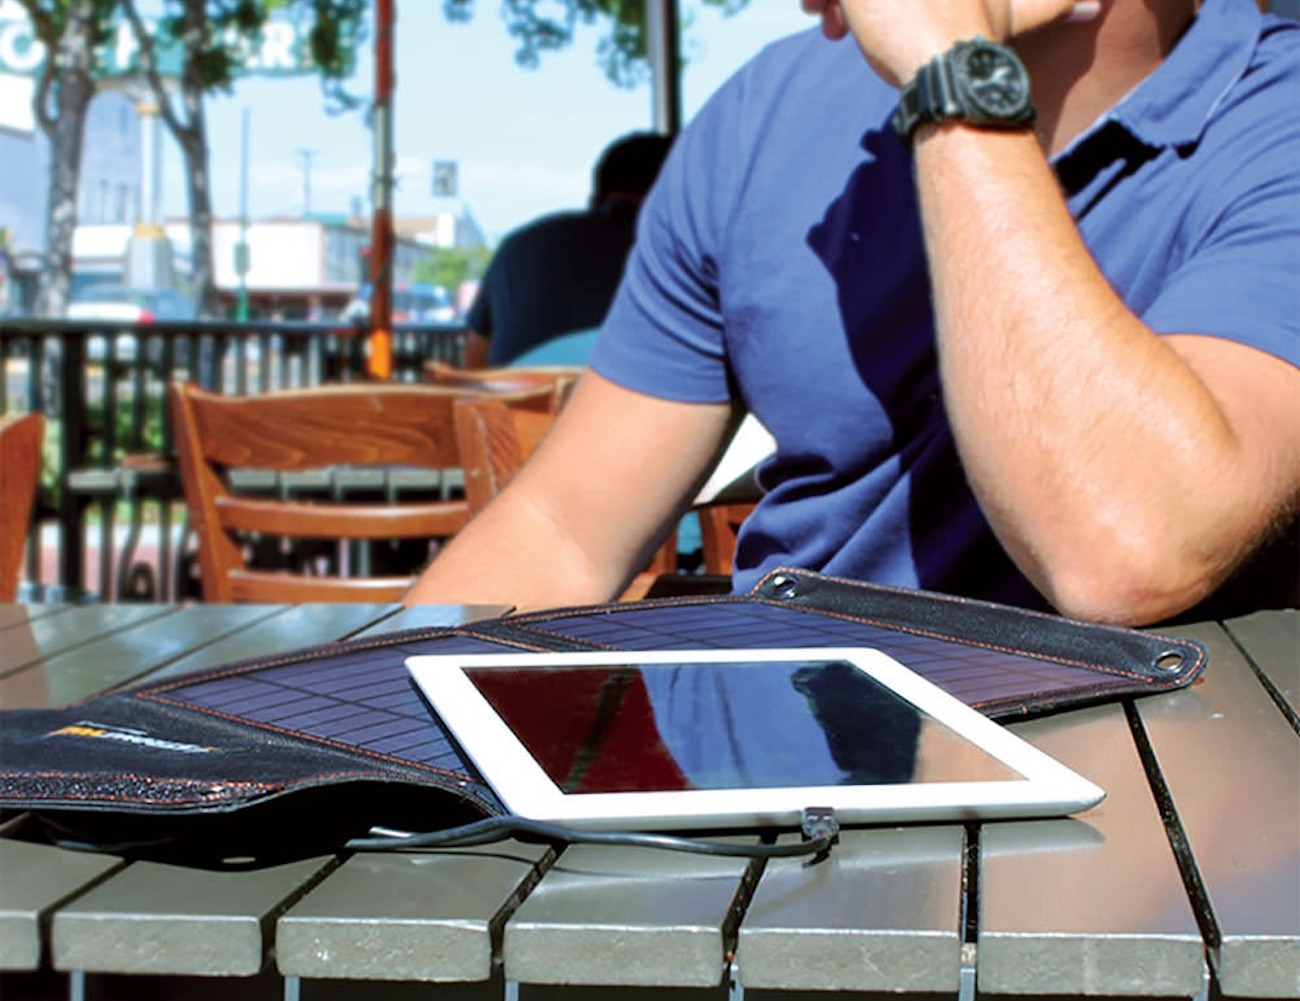 StrongVolt Portable Solar Charger with SunTrack Technology